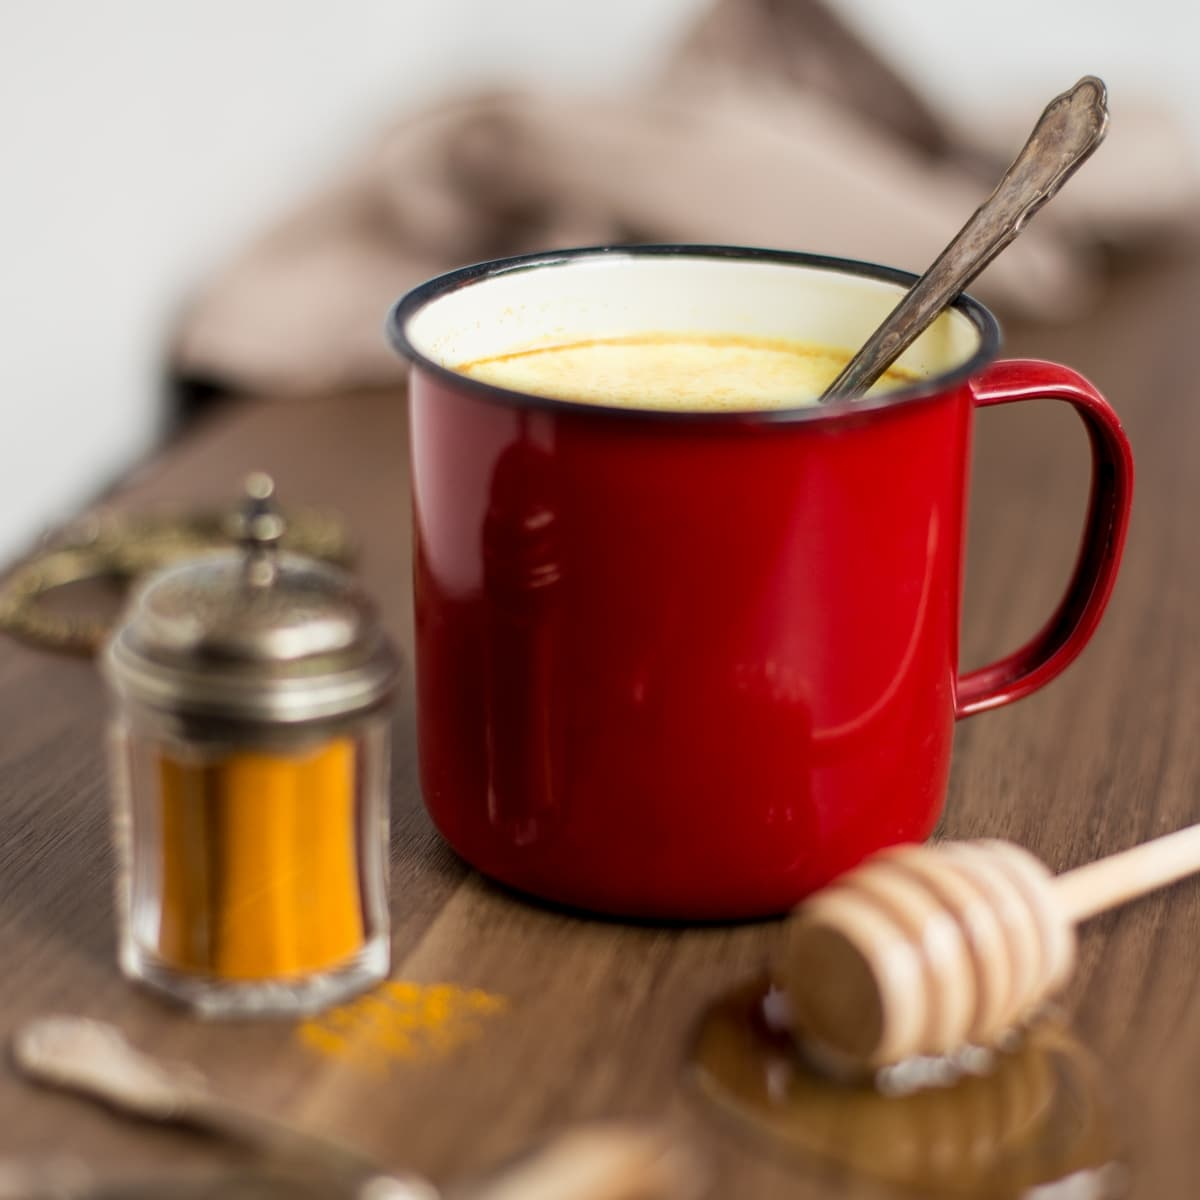 Hot milk with honey, rum and turmeric powder in a red enamel mug.